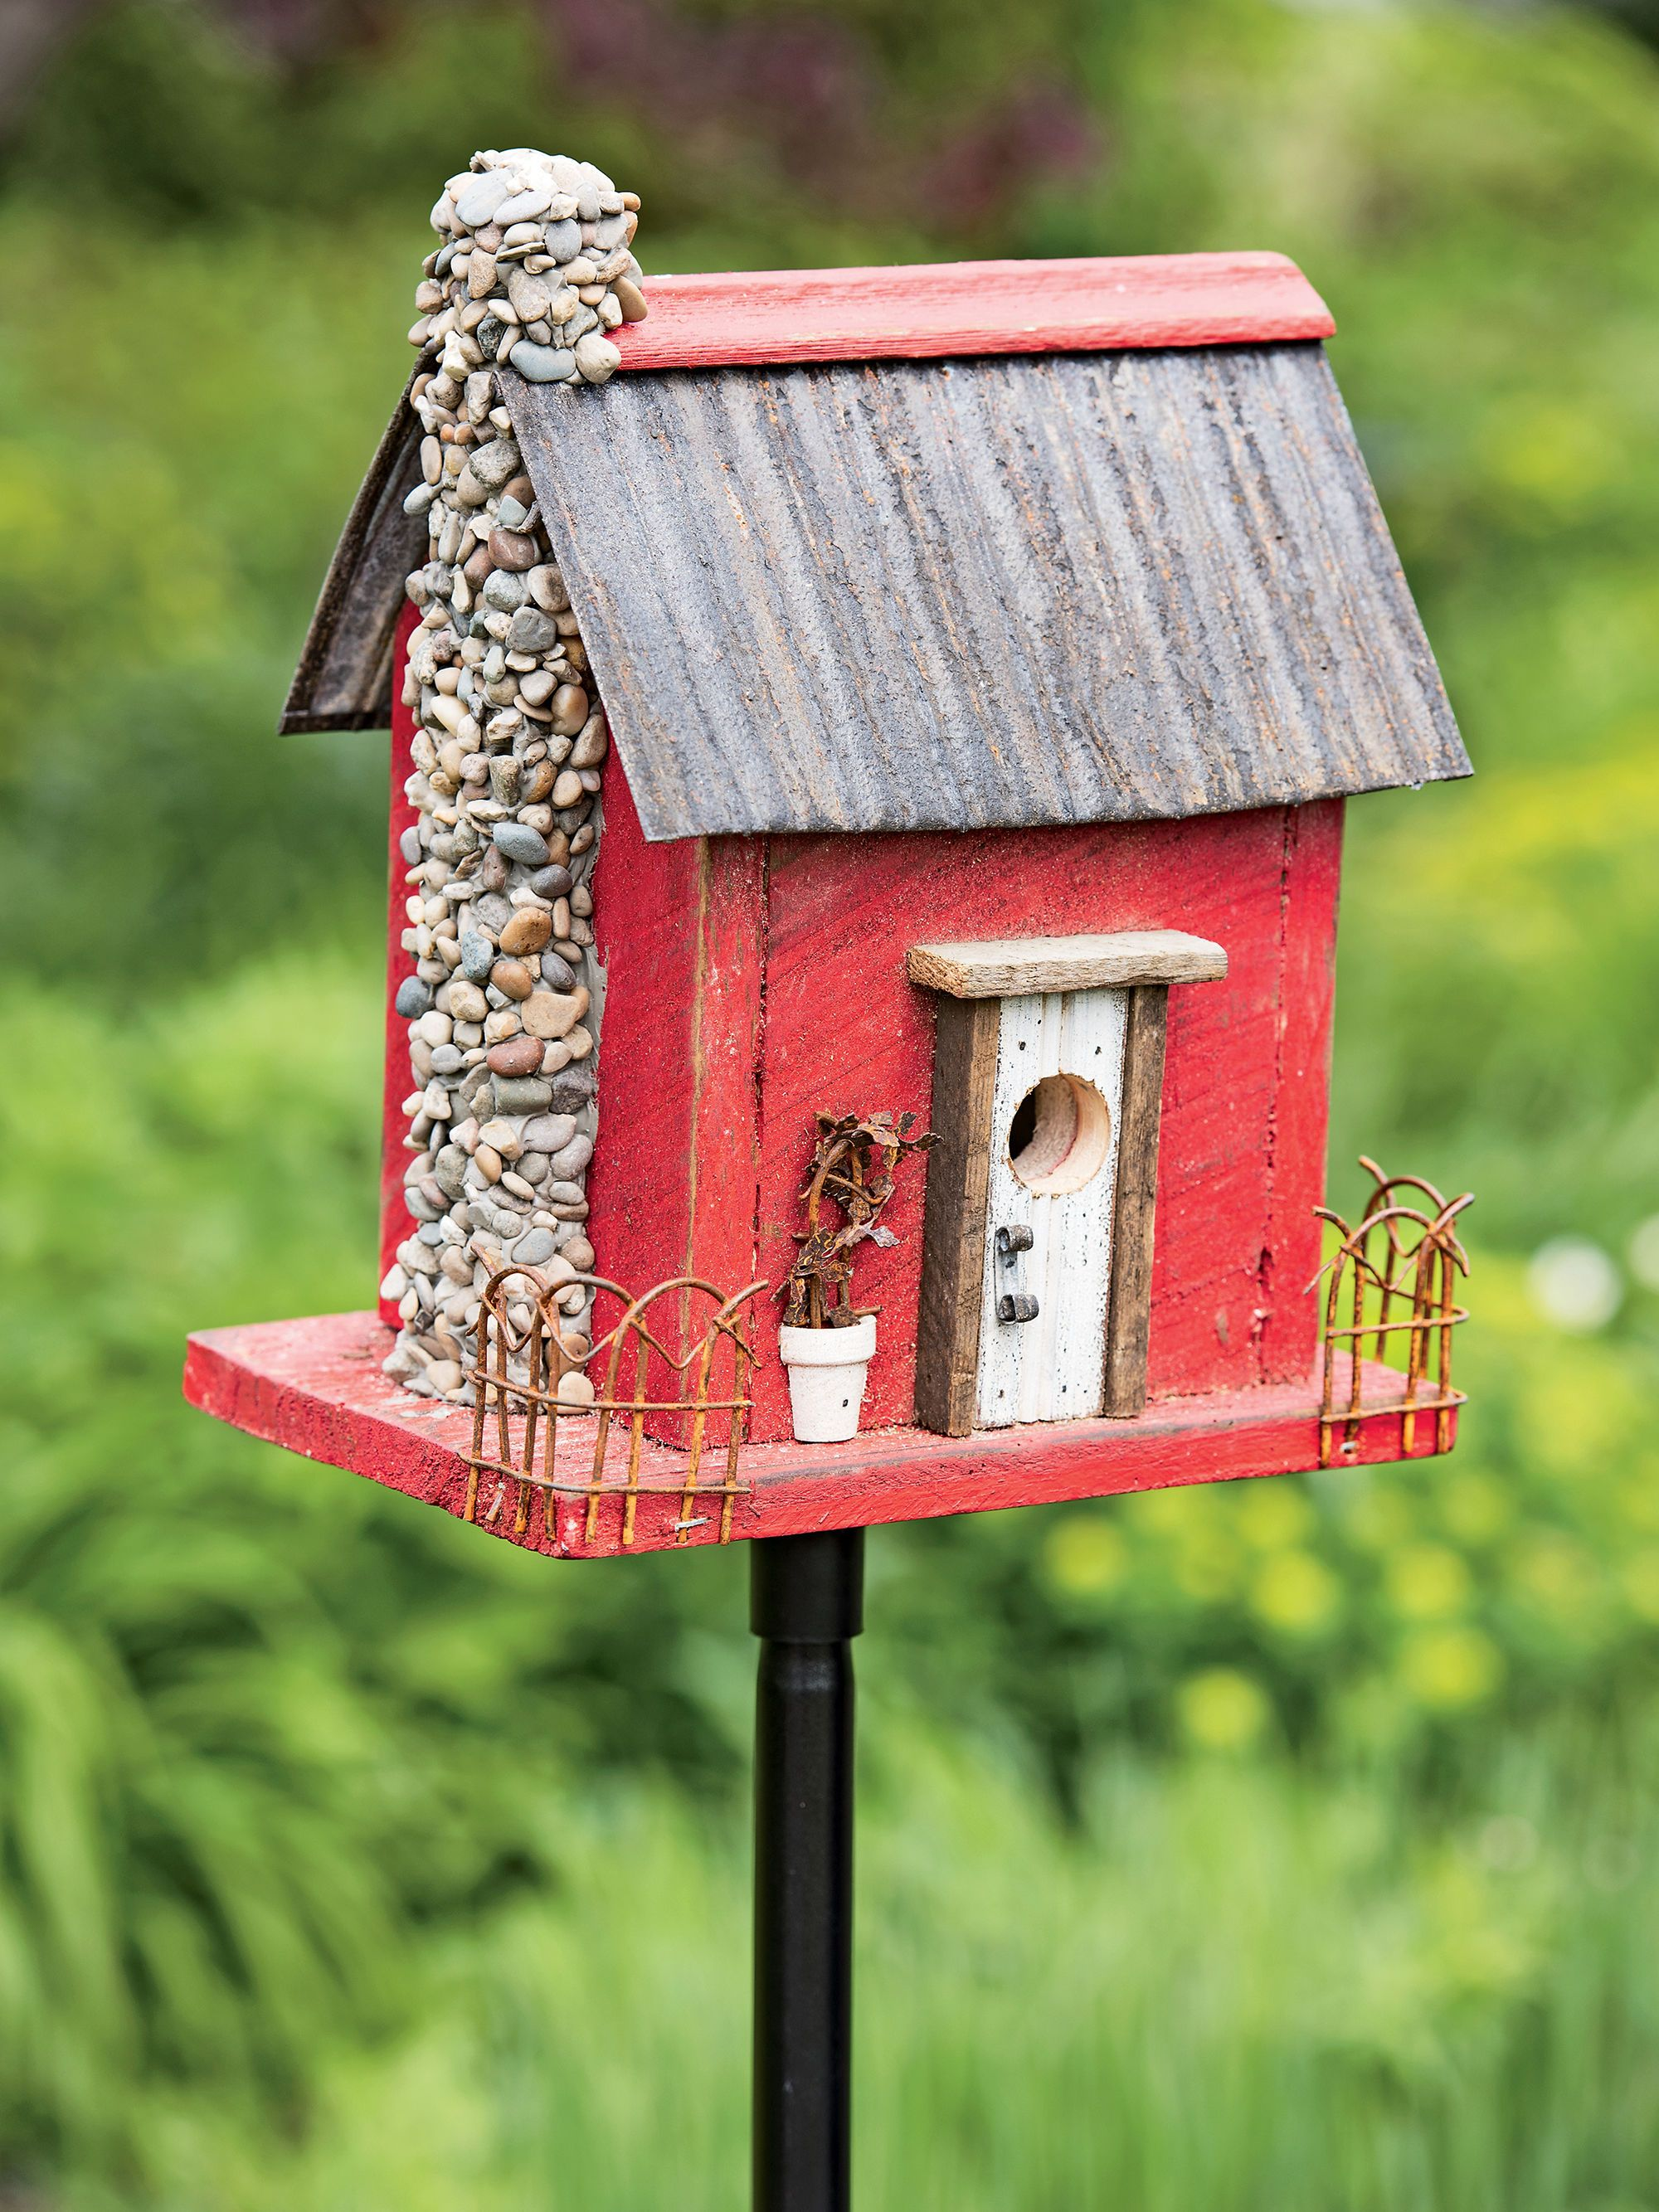 Birdhouse Photos and Images - Page 2 | CrystalGraphics